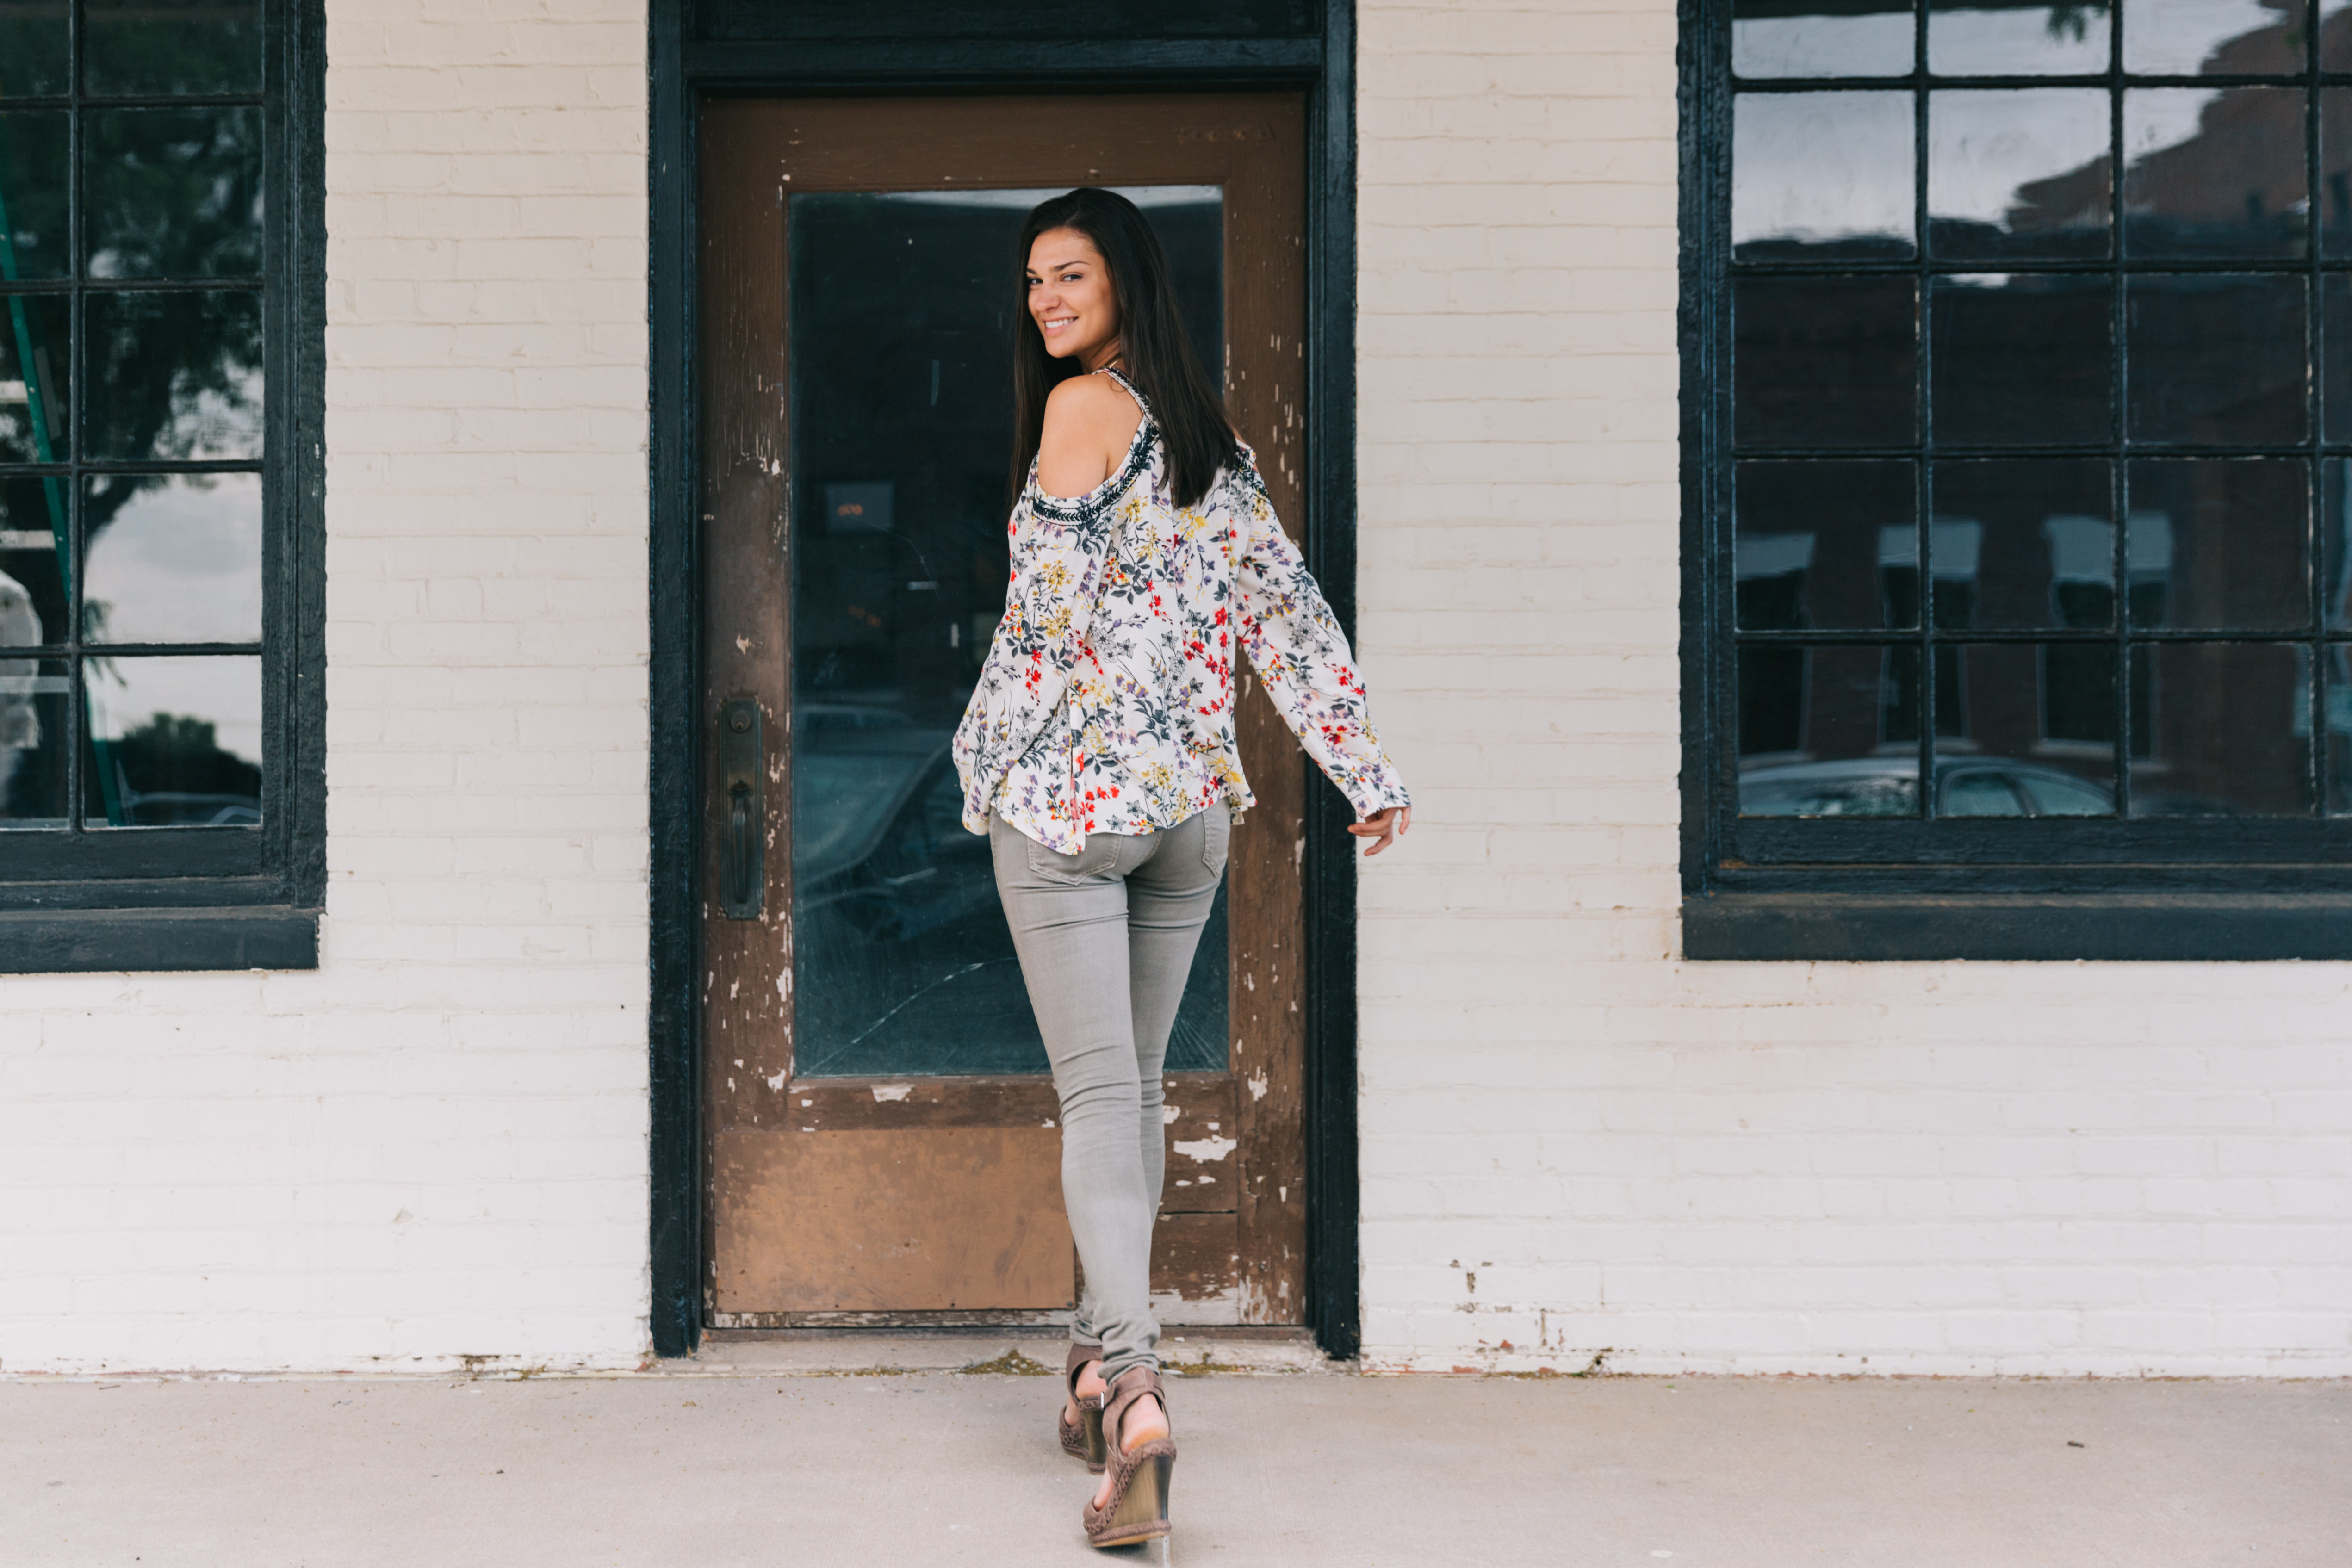 brunette woman walking away from camera, looking over her shoulder smiling. Wearing grey skinny jeans, wedges, and white and blue cold shoulder top.